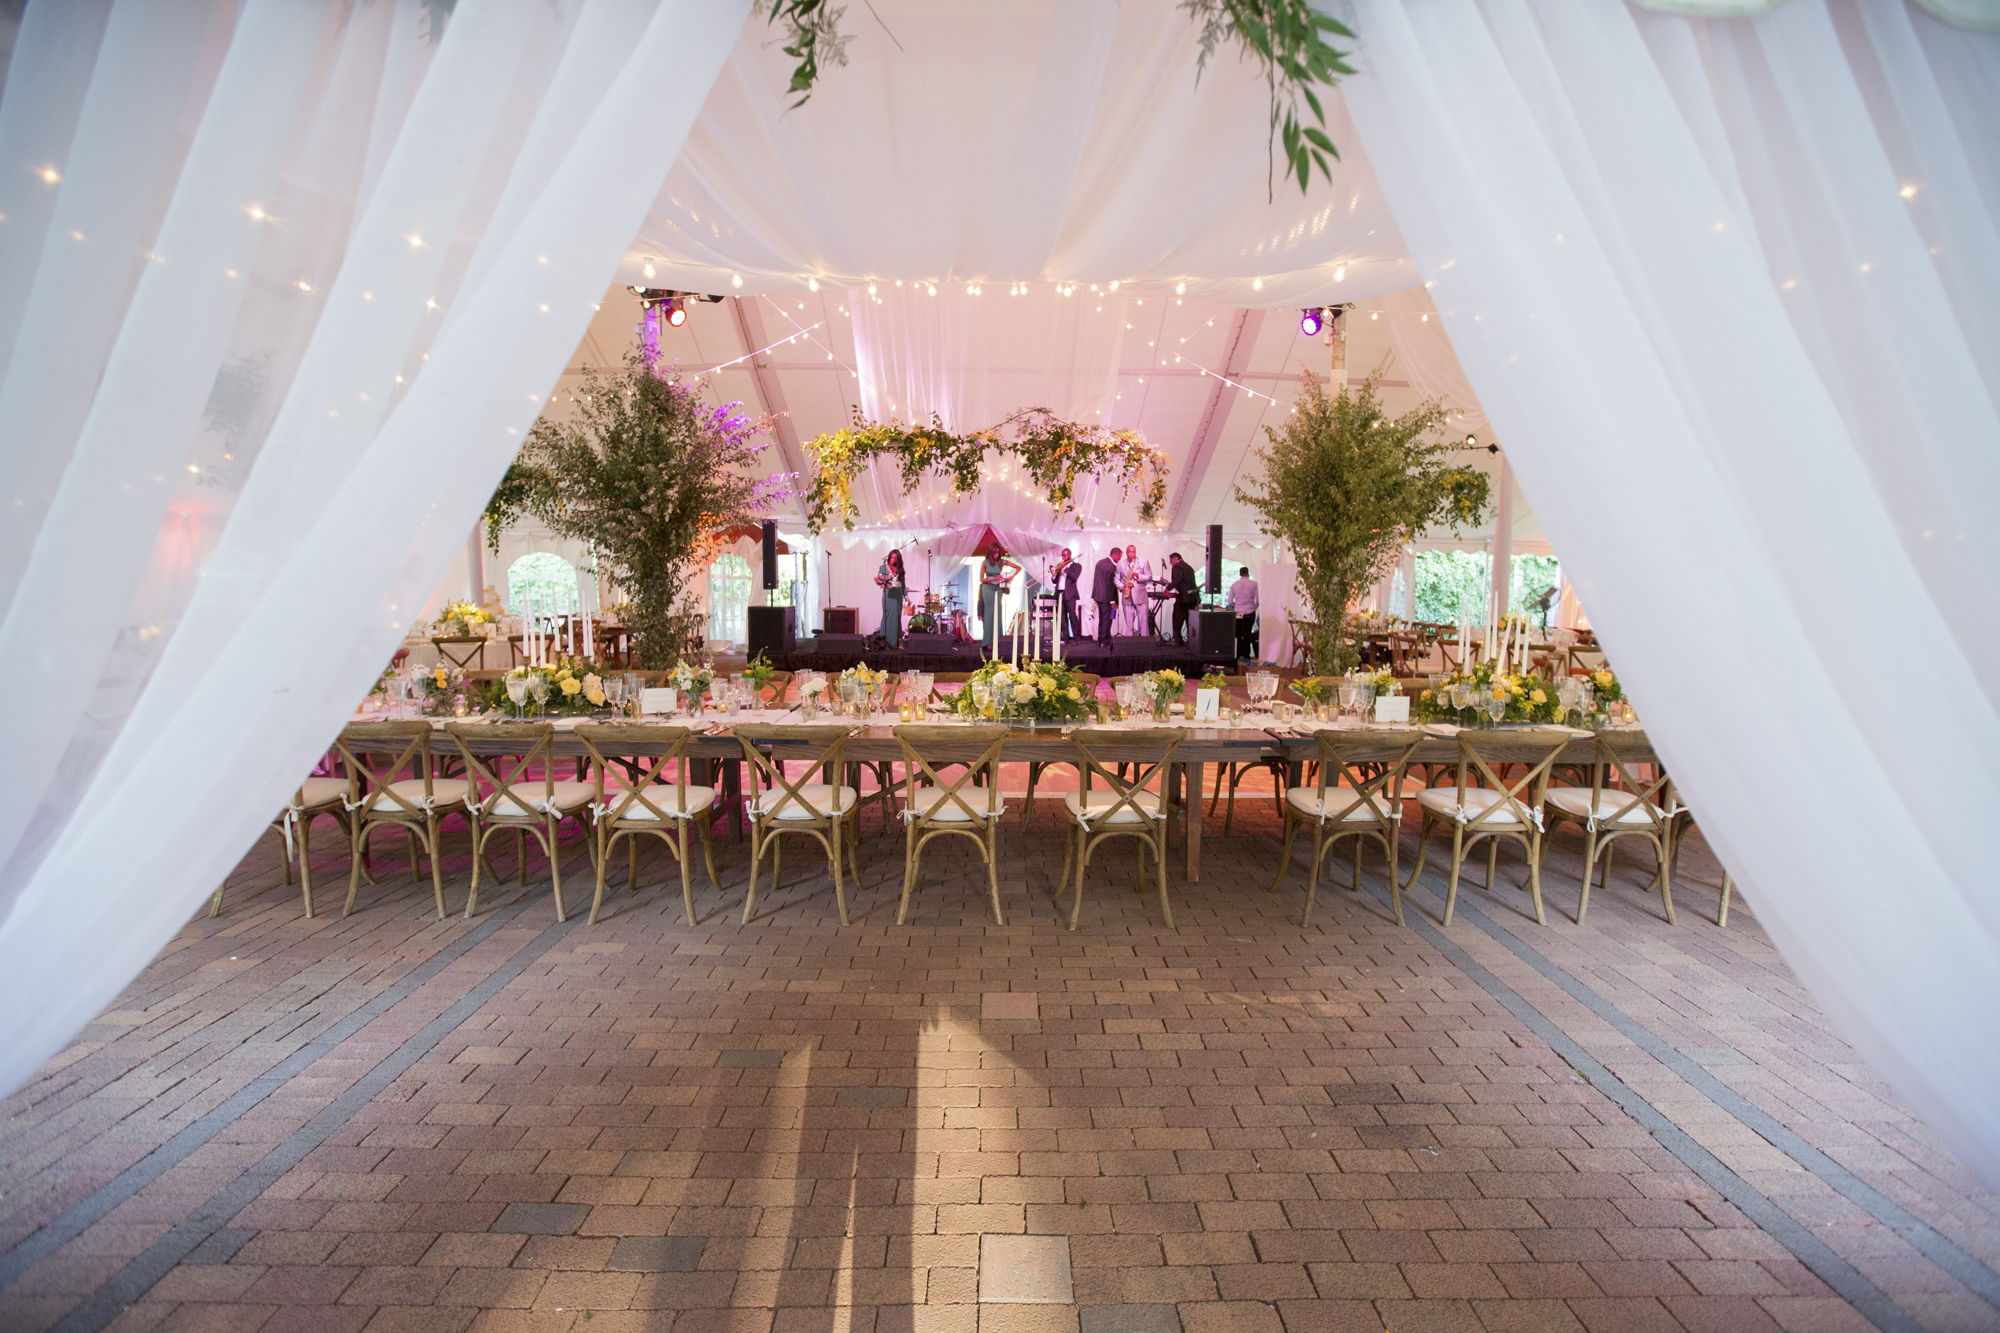 Draped fabric at tent entrance